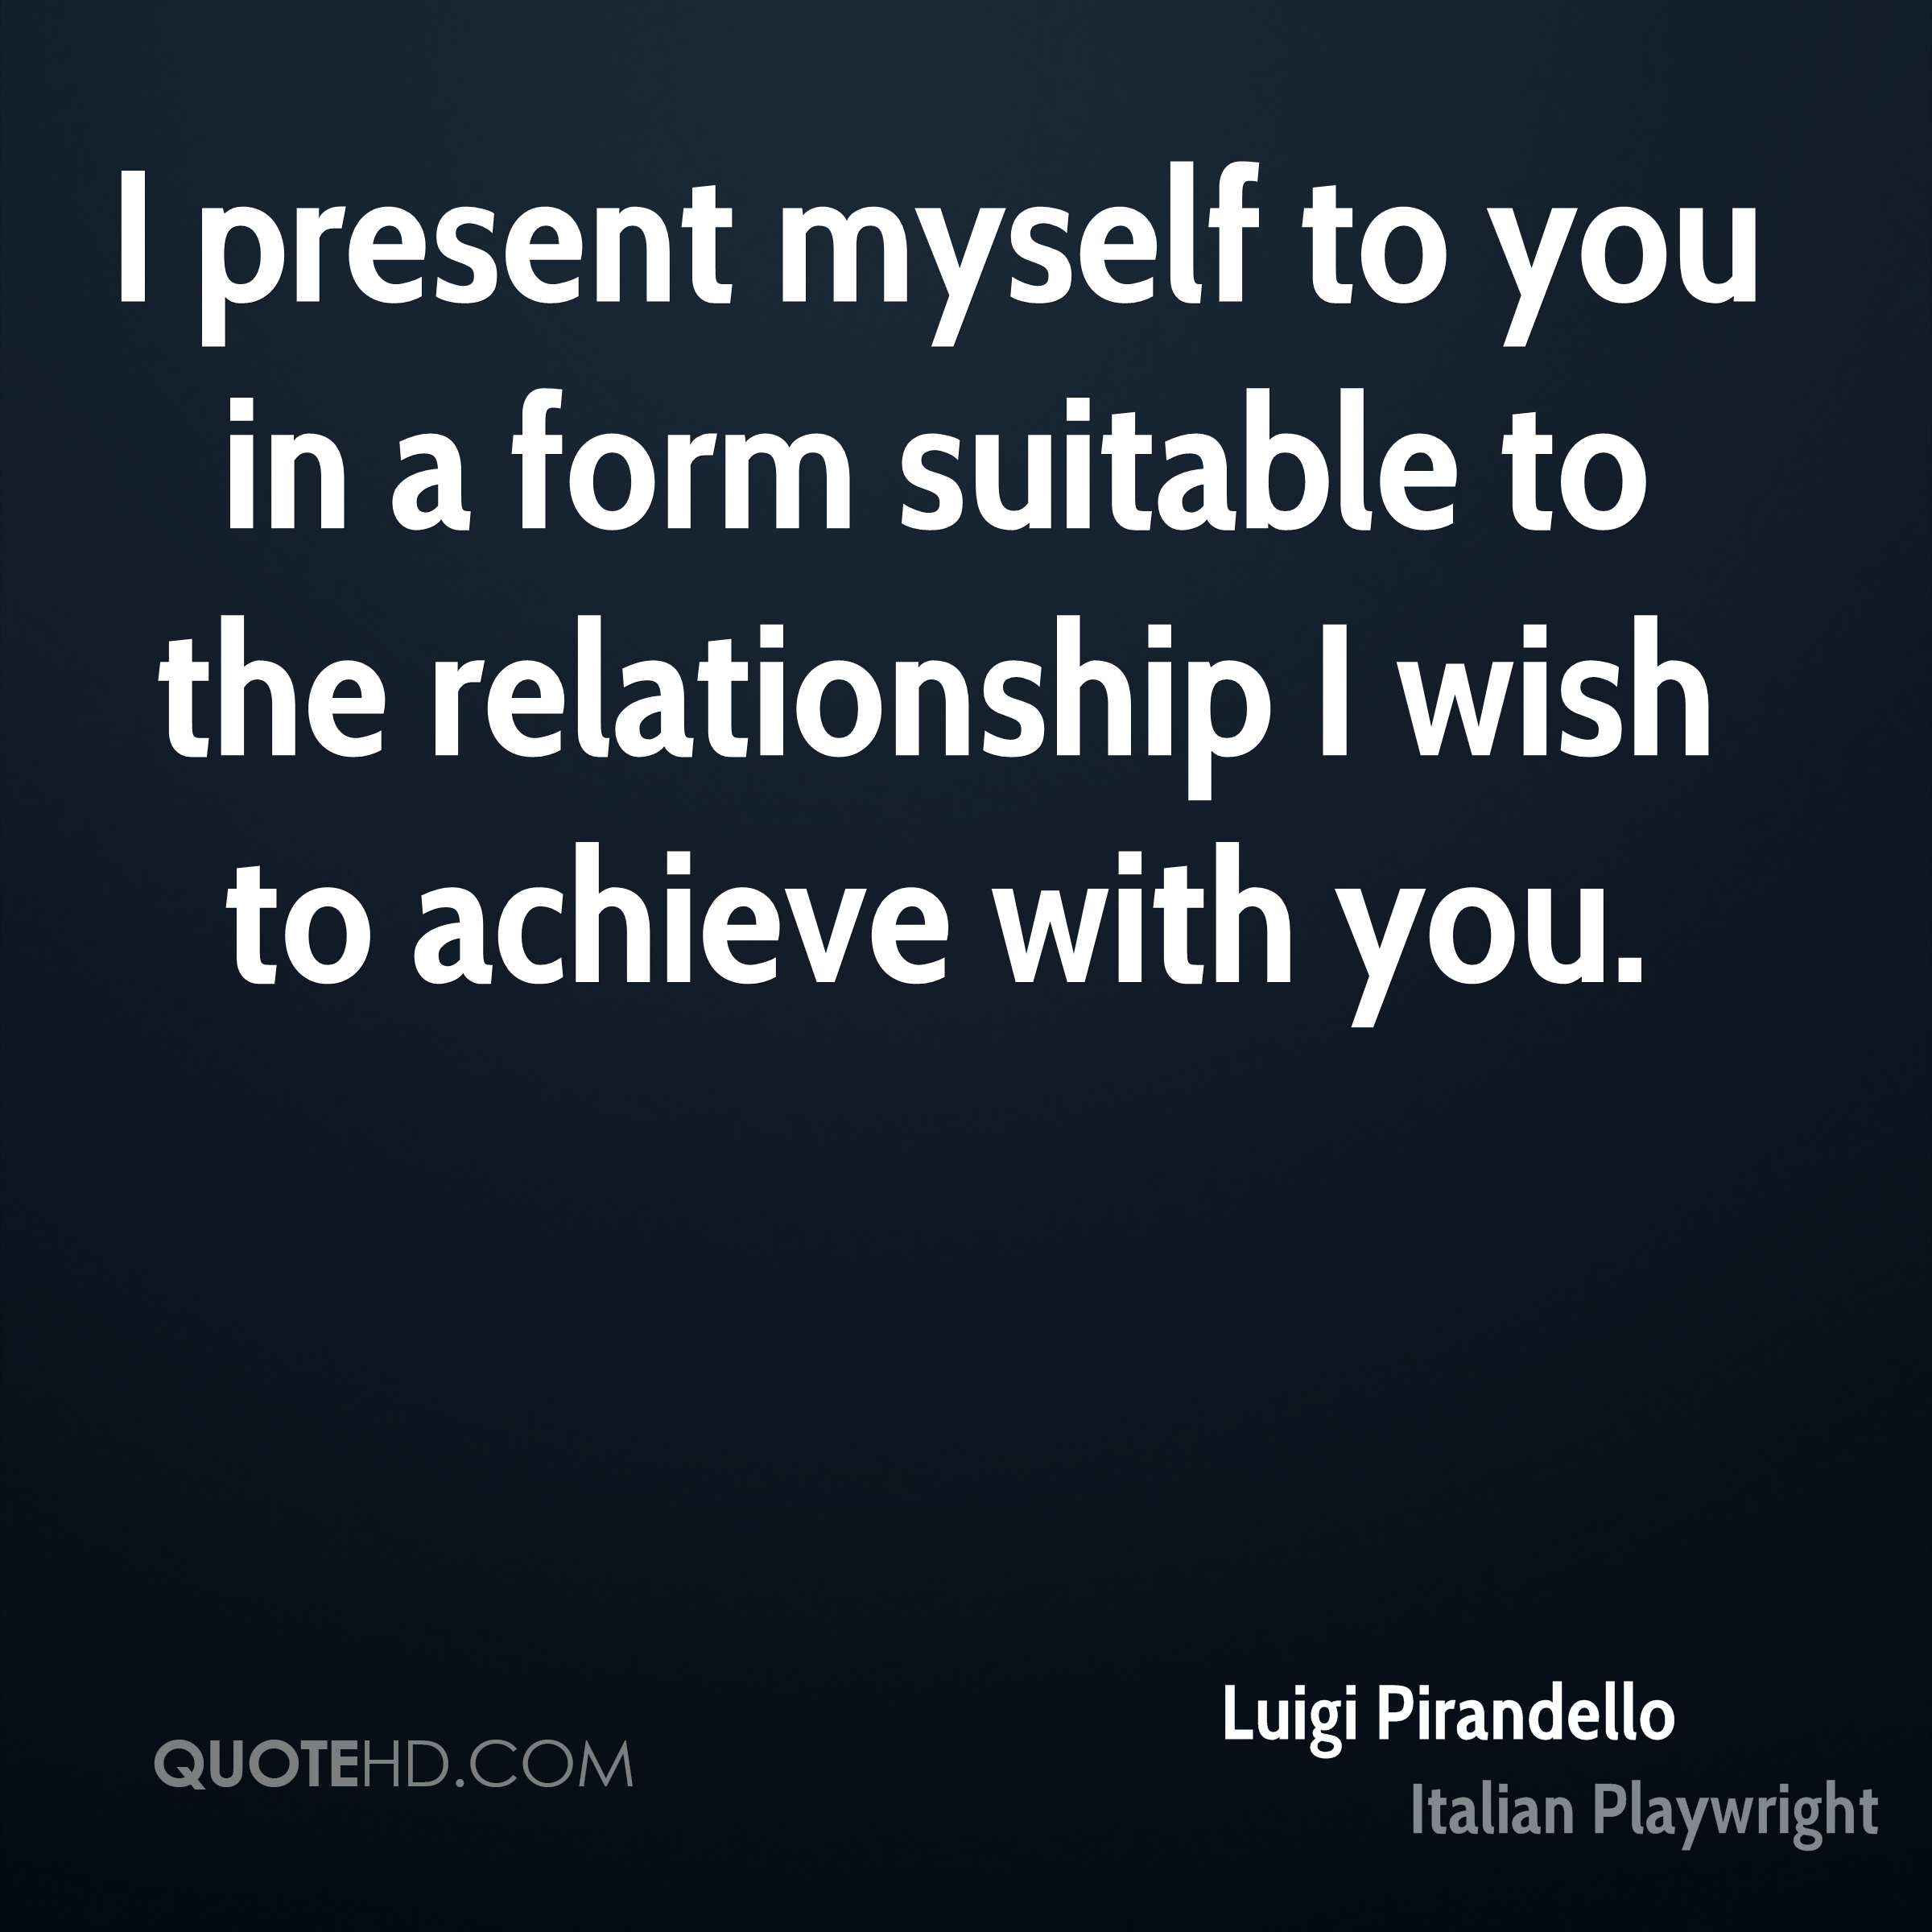 I present myself to you in a form suitable to the relationship I wish to achieve with you.